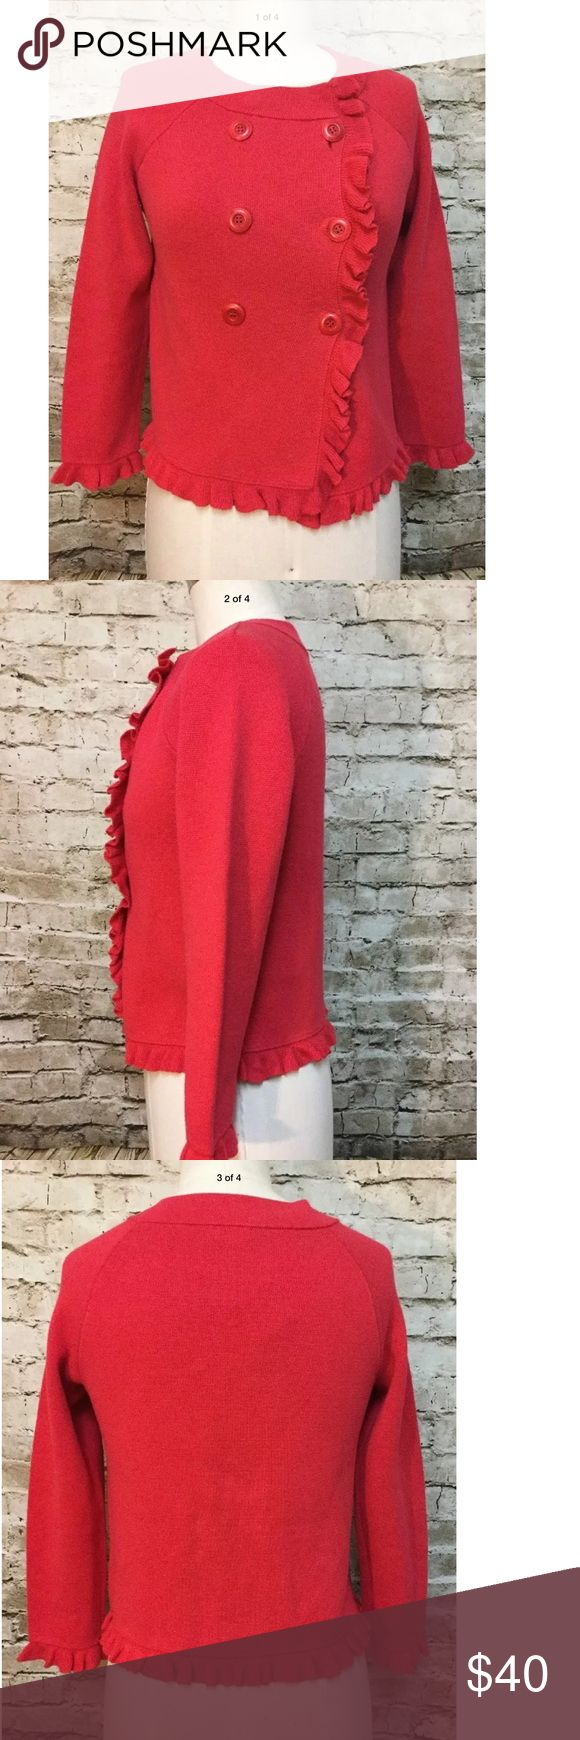 """J crew red career sweater jacket New J.Crew """"Katie"""" sweater jacket. Fabulous large buttons and ruffle trim Size: S Chest: 38"""" Length: 23"""" J. Crew Jackets & Coats Blazers"""